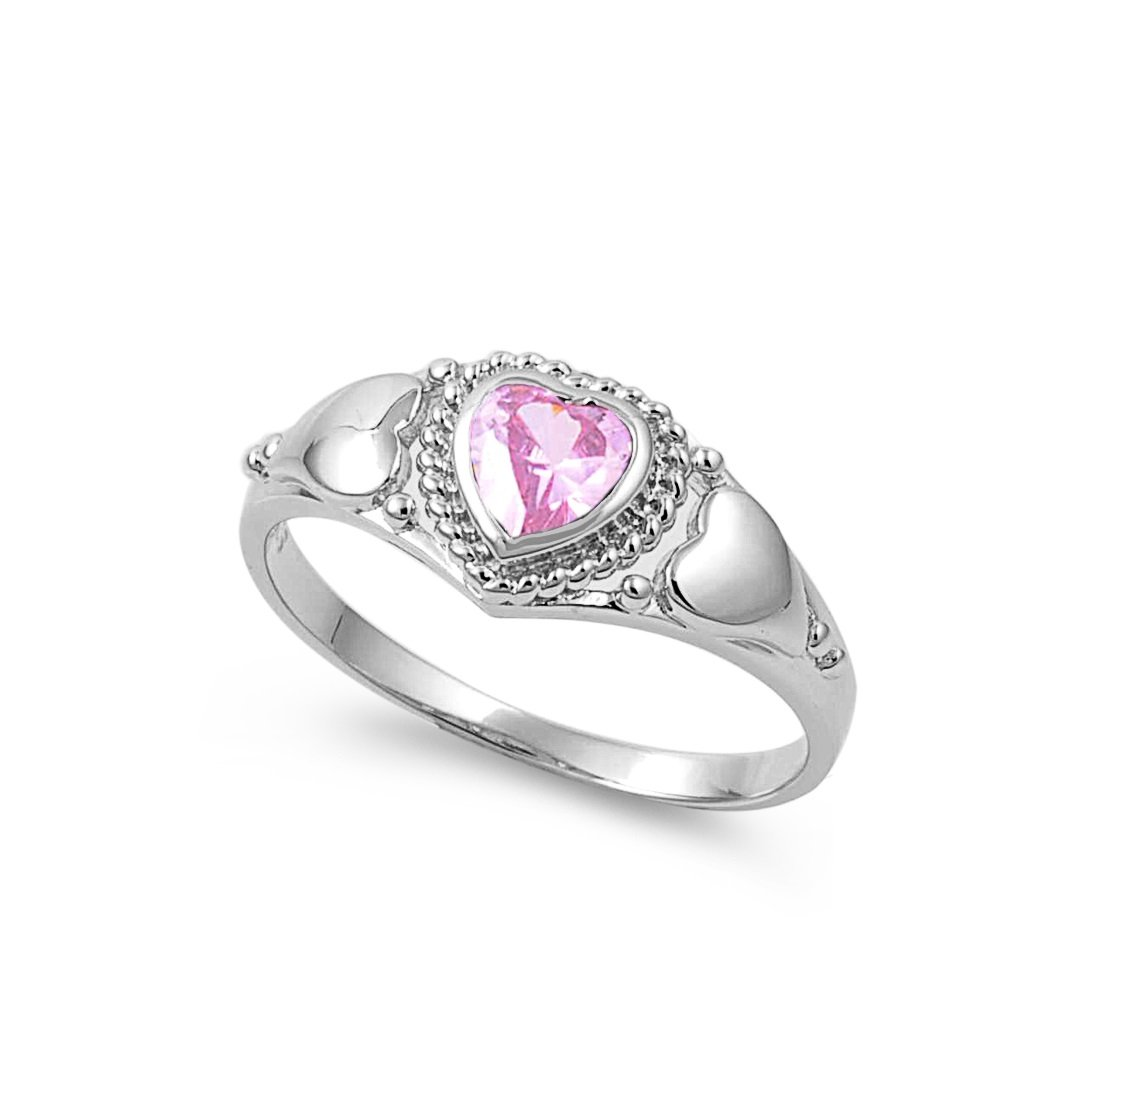 CloseoutWarehouse Heart Shaped Pink Cubic Zirconia Center Braided Heart Ring Sterling Silver Size 4